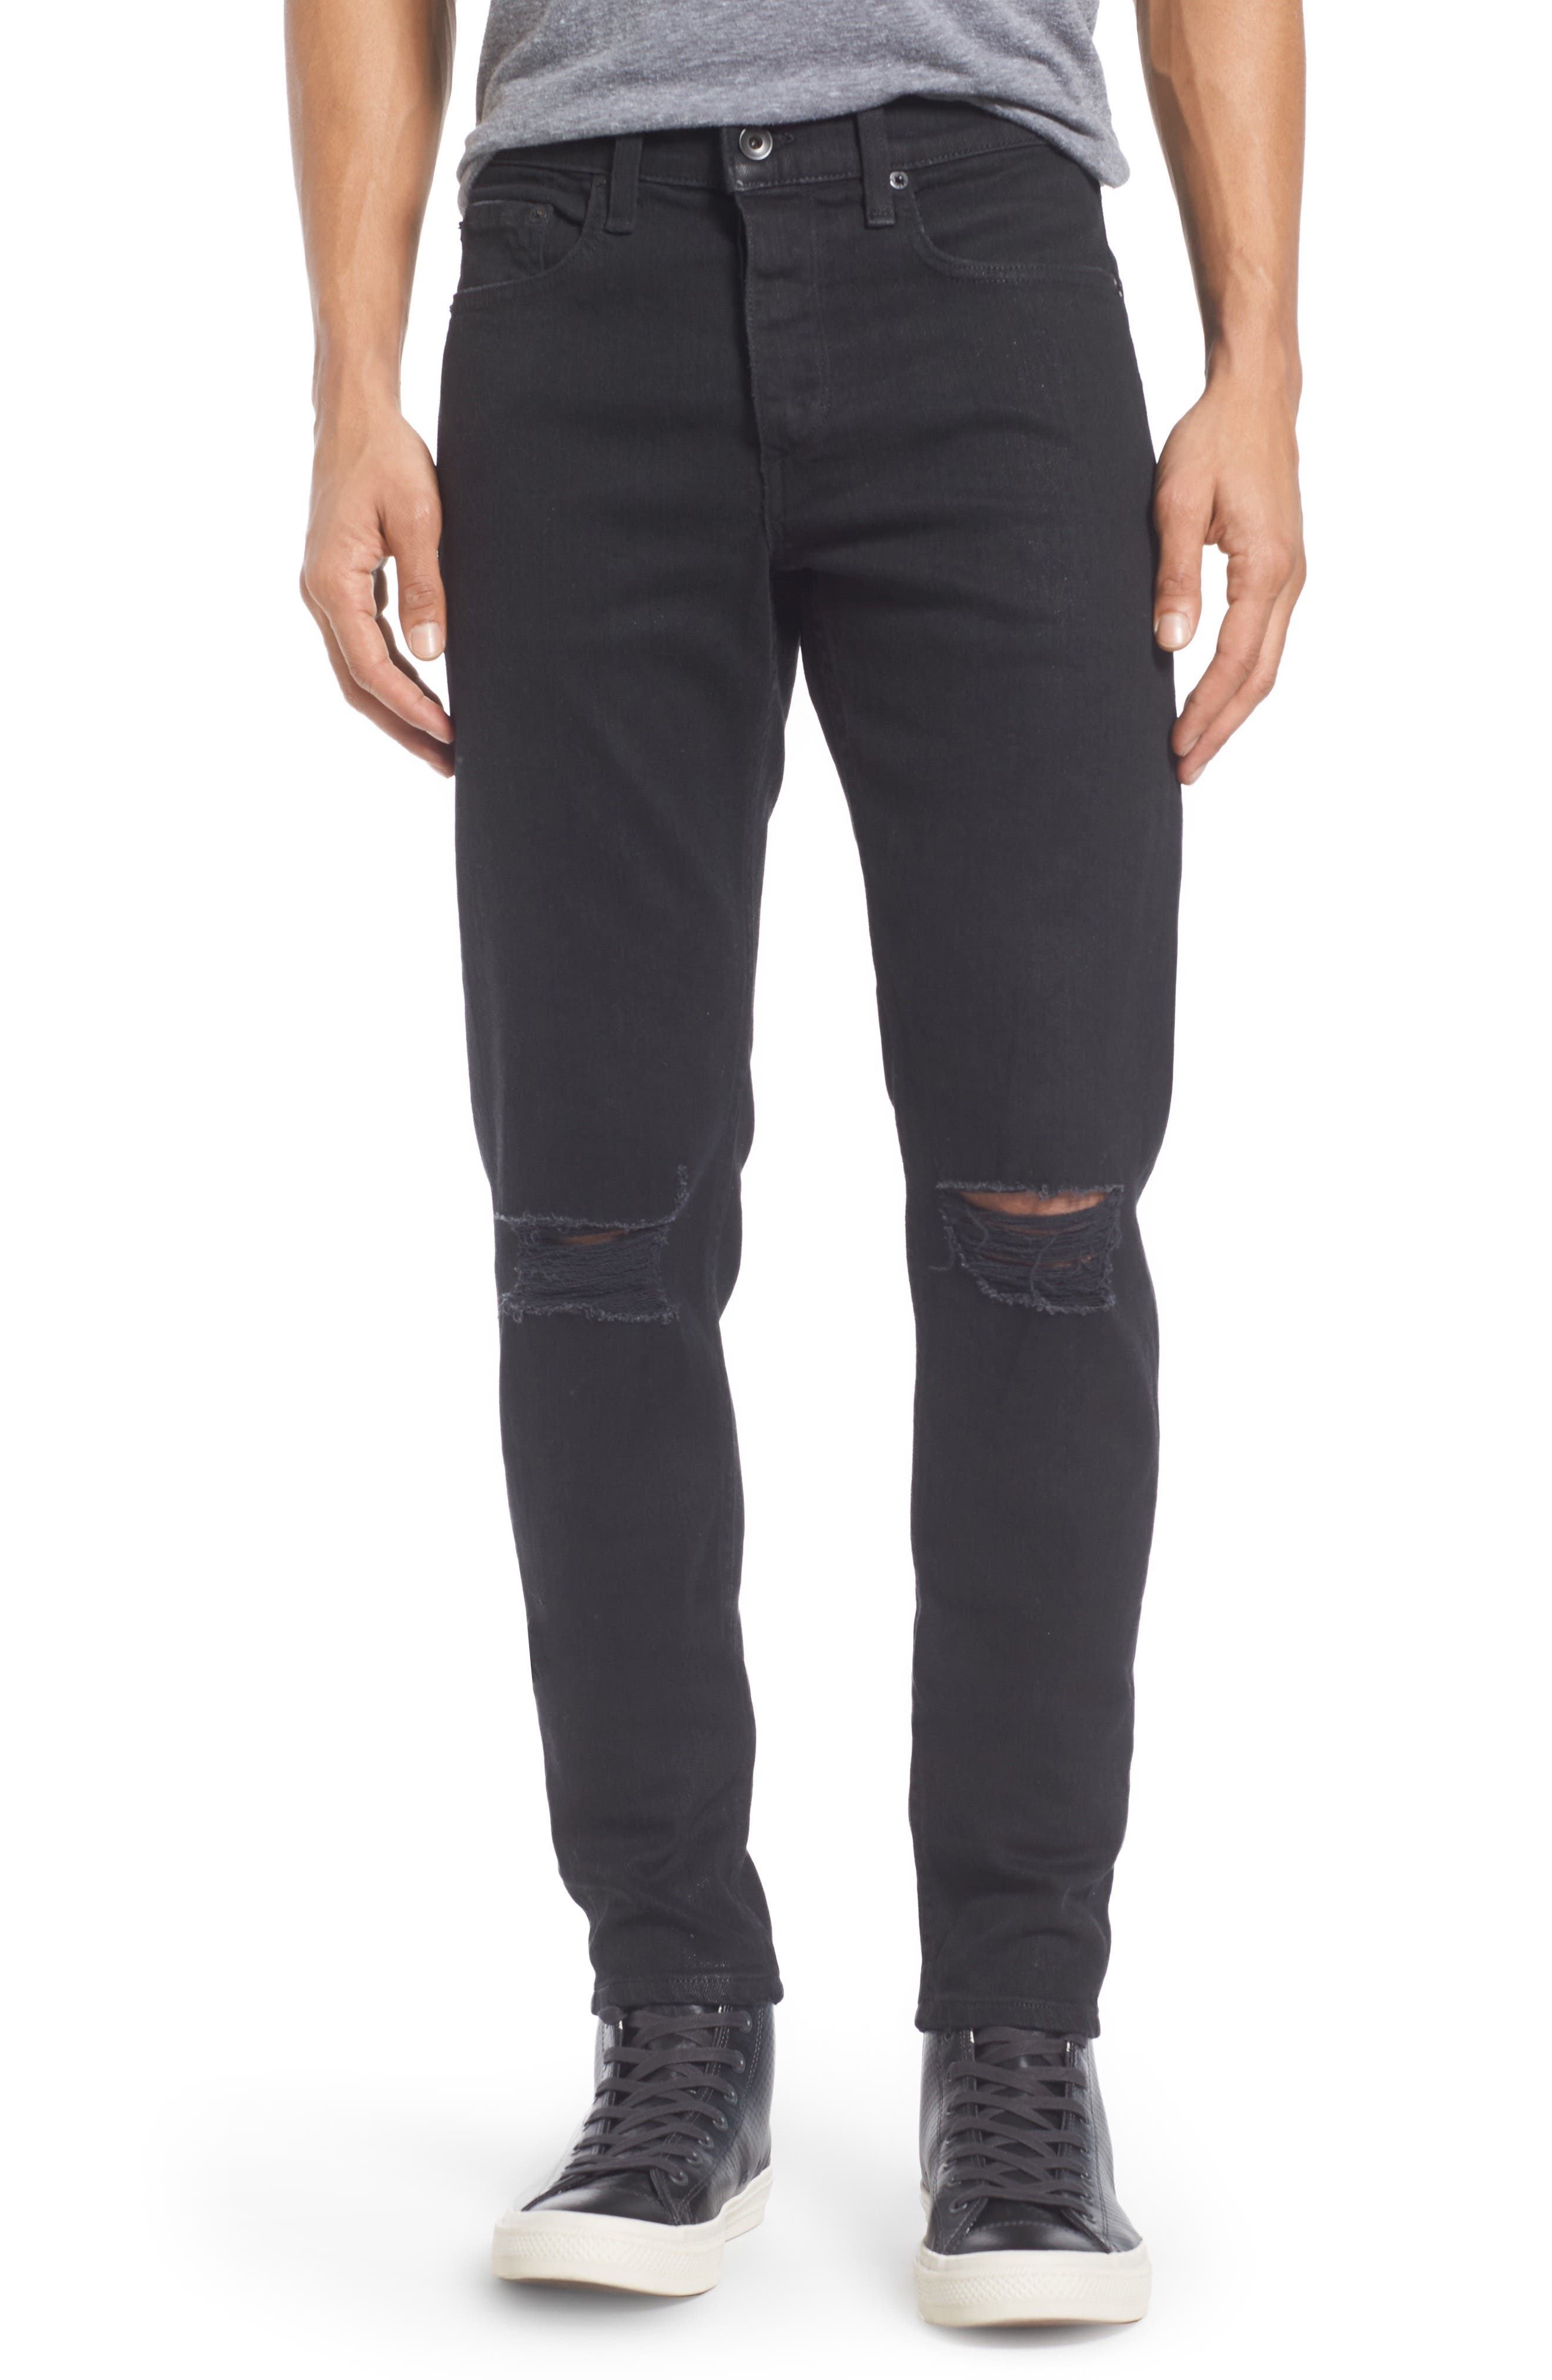 Fit 1 Skinny Fit Jeans,                             Main thumbnail 1, color,                             BLACK